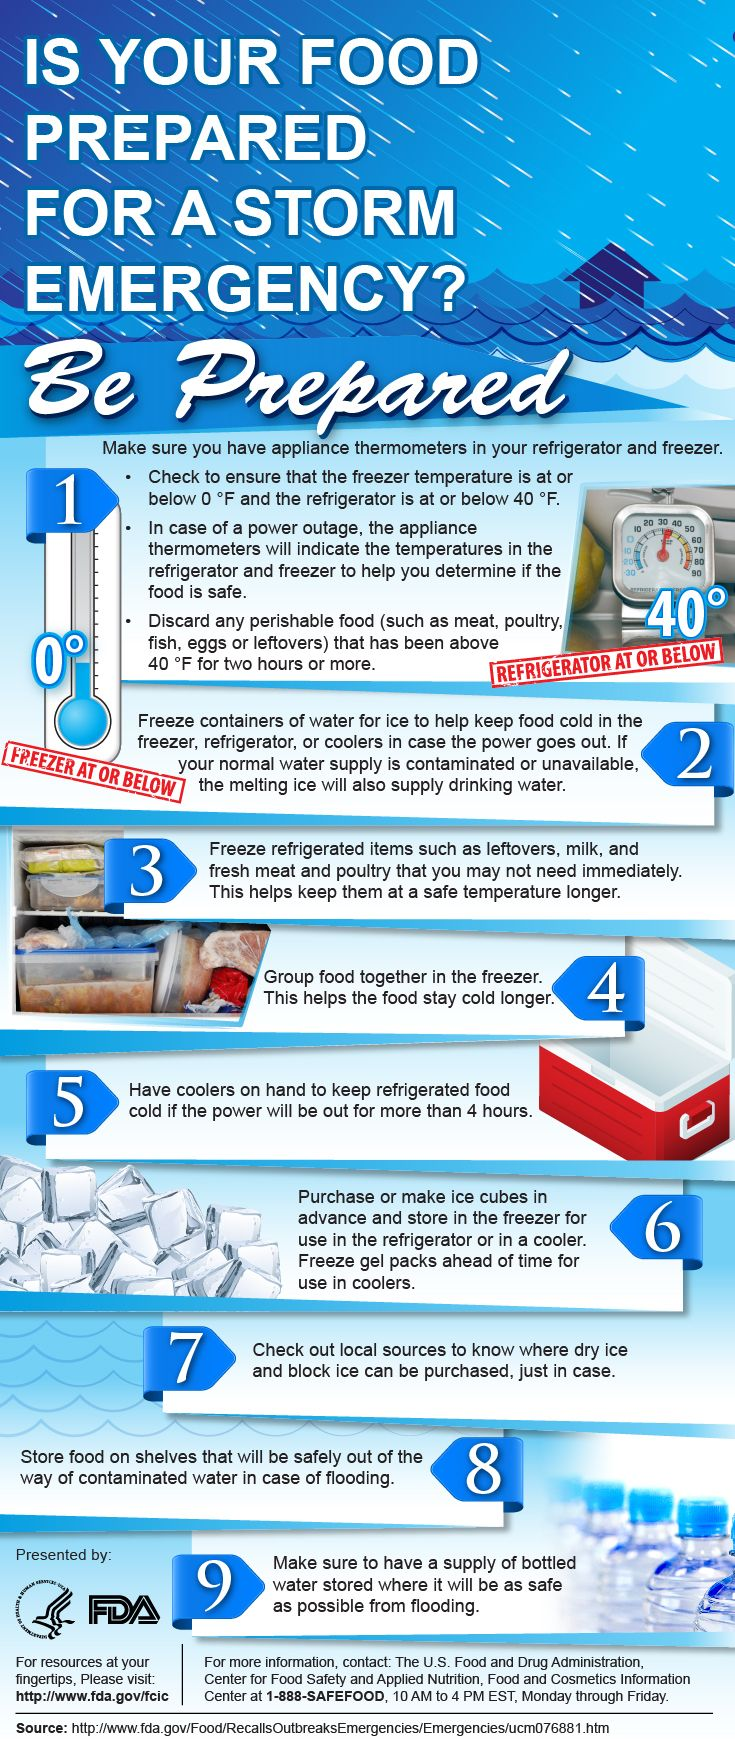 What Consumers Need to Know About Food and Water Safety During Hurricanes, Power Outages, and Floods. #Water #PowerOutage